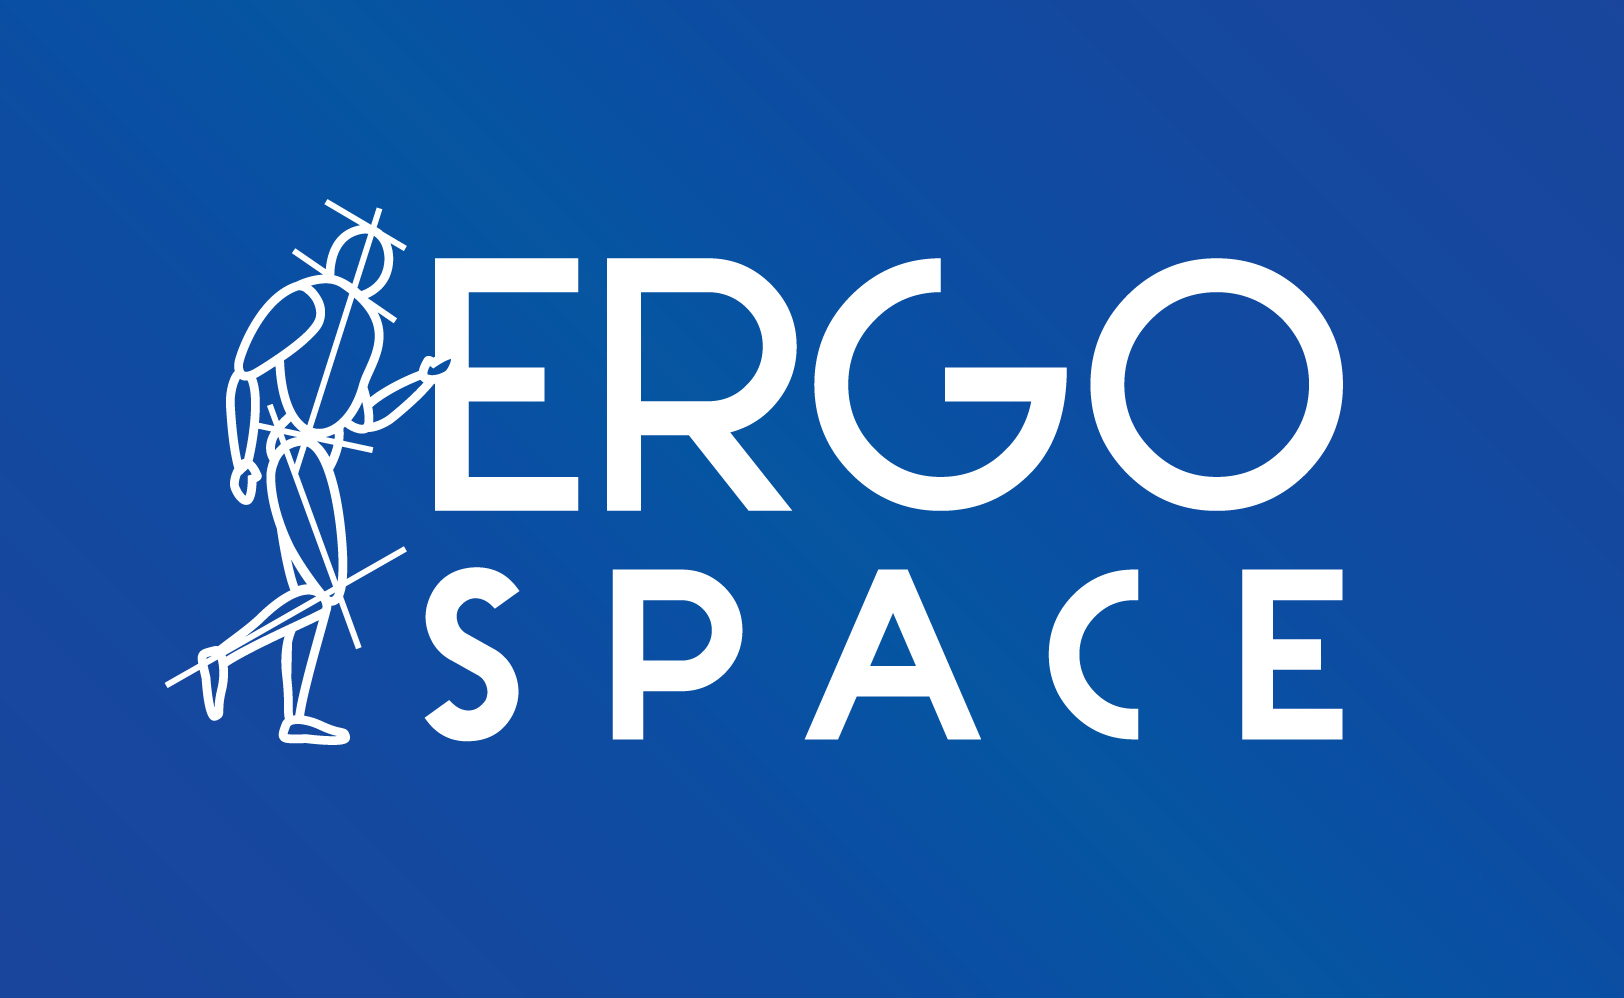 Ergospace AS